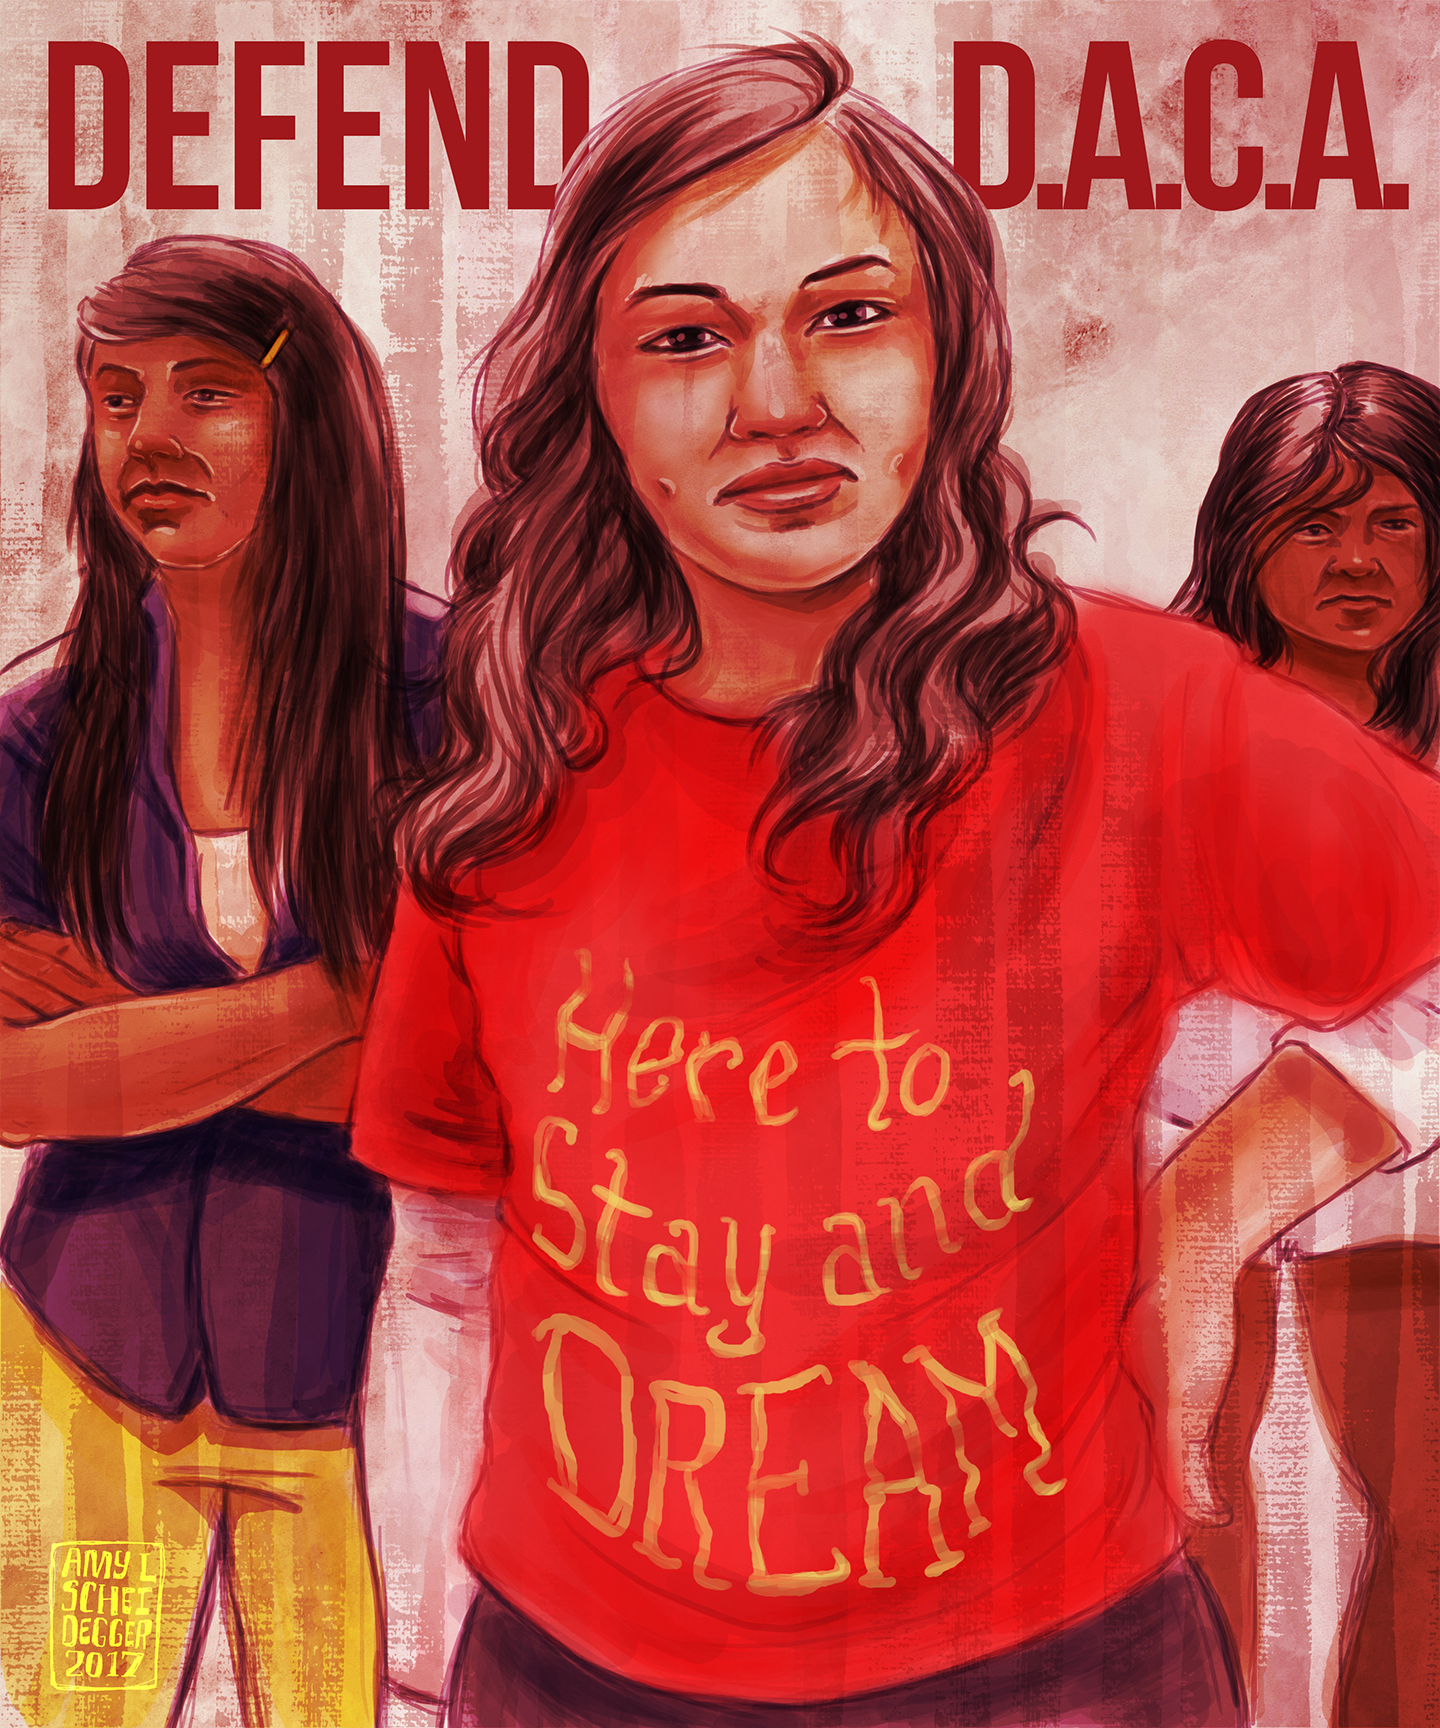 Here to Stay and Dream - Defending DACA  It makes NO sense to expel talented, driven, patriotic young people from the only country they've ever known solely based on the actions of their parents. Many have no idea they're undocumented until they apply for a job, or college, or a driver's license. Where are we supposed to send these kids and young adults? To countries they don't know or remember? Countries their parents fled because of war or violence? Call your senators and urge them to DEFEND DACA  Digital Illustration. Created September, 2017